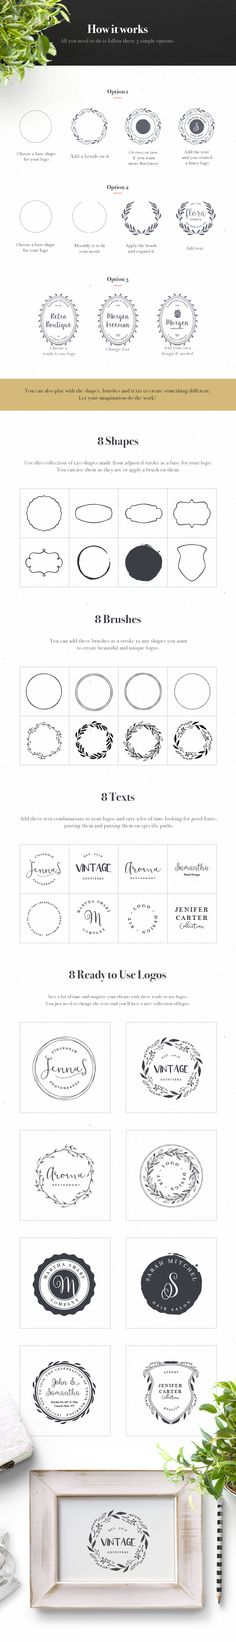 Today we have for you a logo design kit that will help you create gorgeous invitations, labels, apparel, and branding...